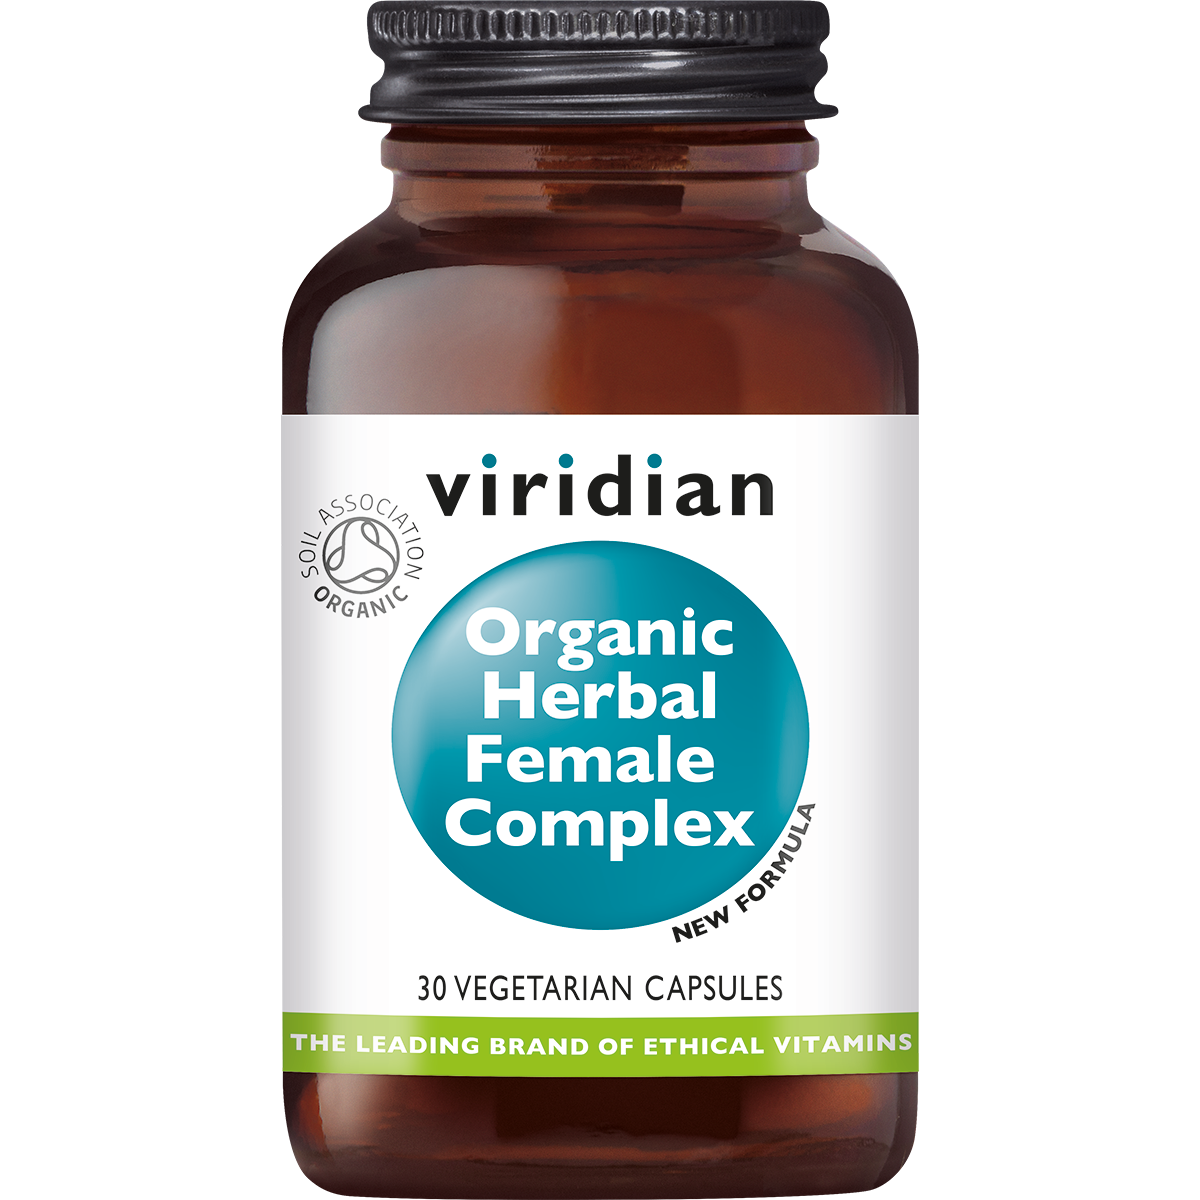 Organic Herbal Female Complex